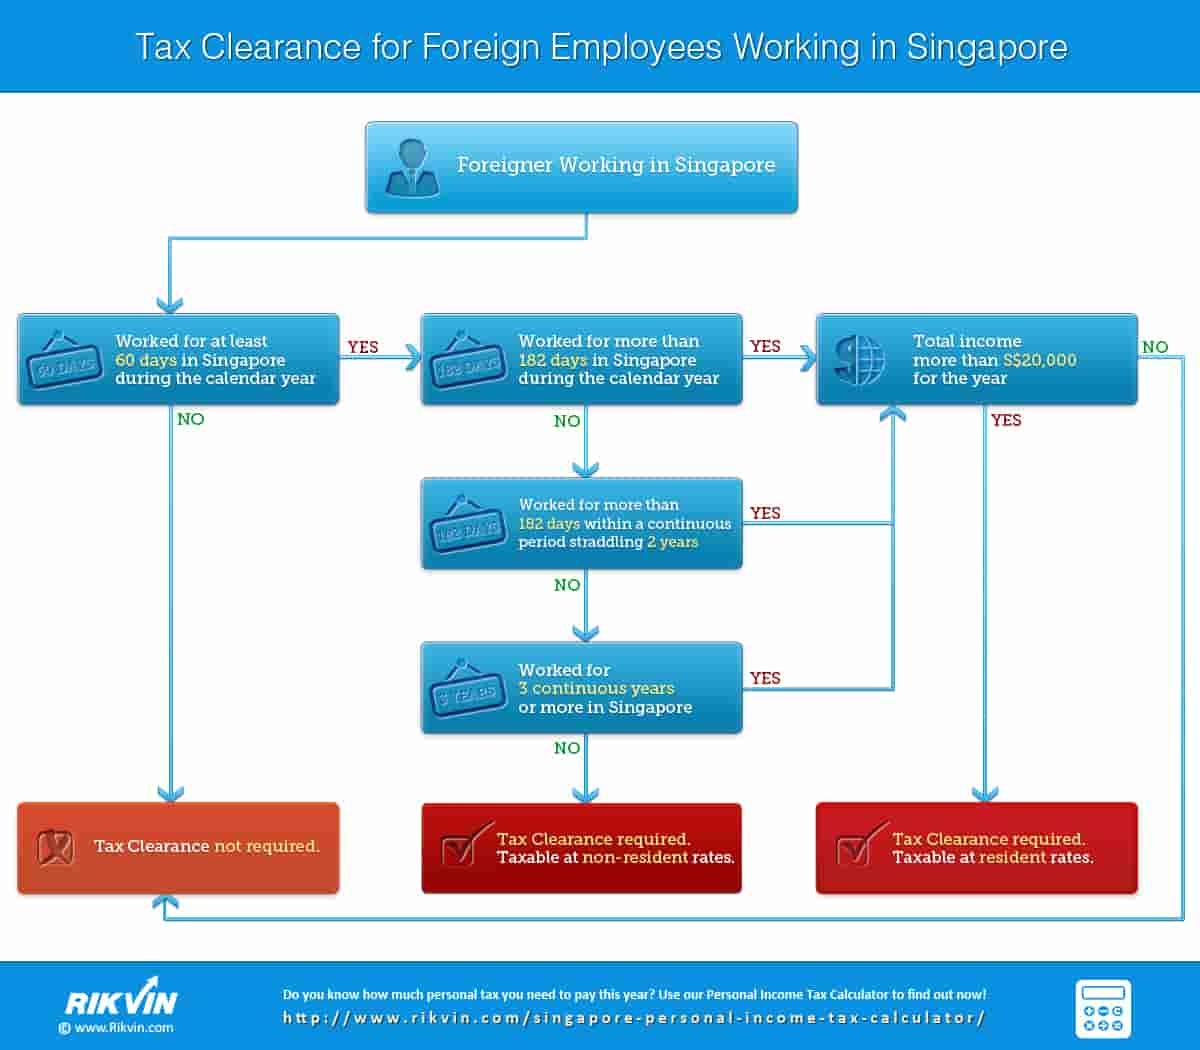 flowchart-on-requirement-of-tax-clearance-for-foreign-employees-working-in-Singapore Infographic: Tax Clearance for Foreign Employees Working in Singapore